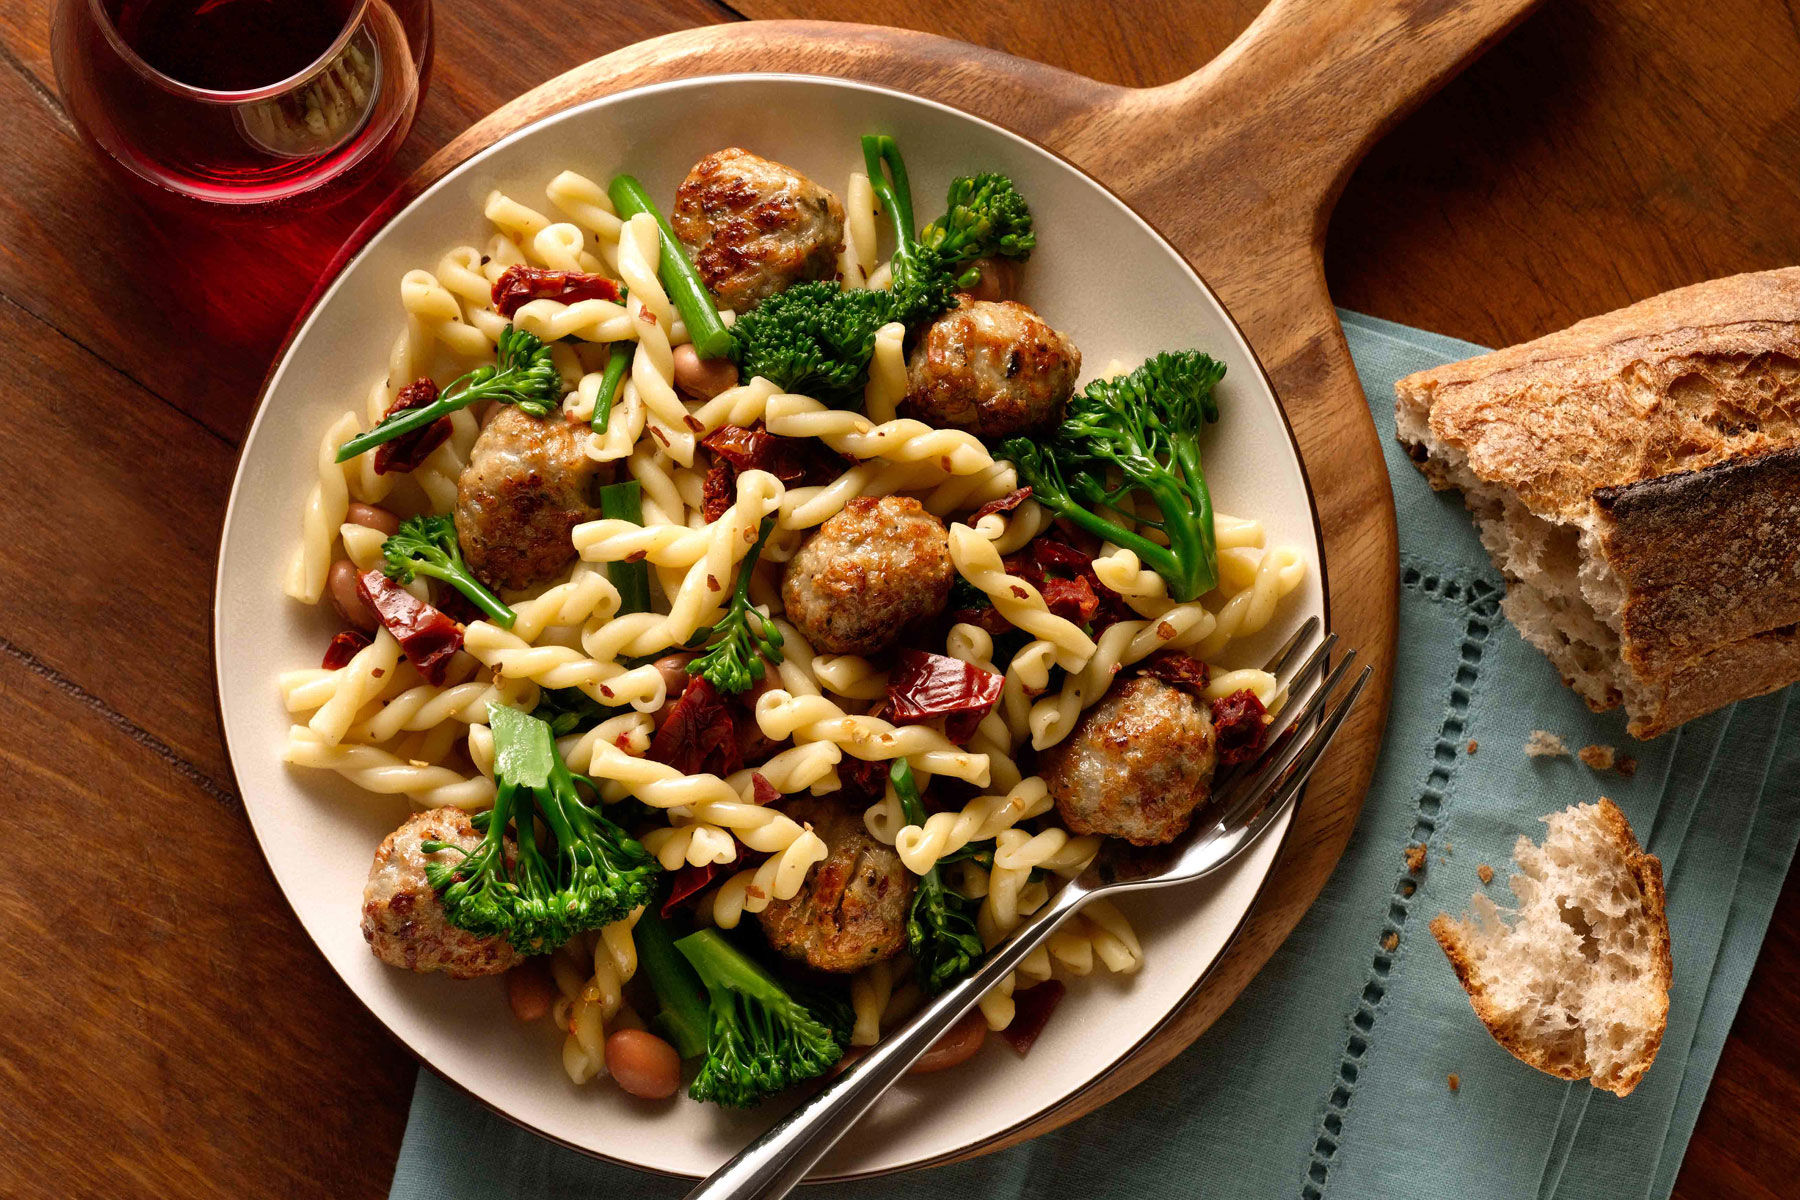 Gemelli with meatballs